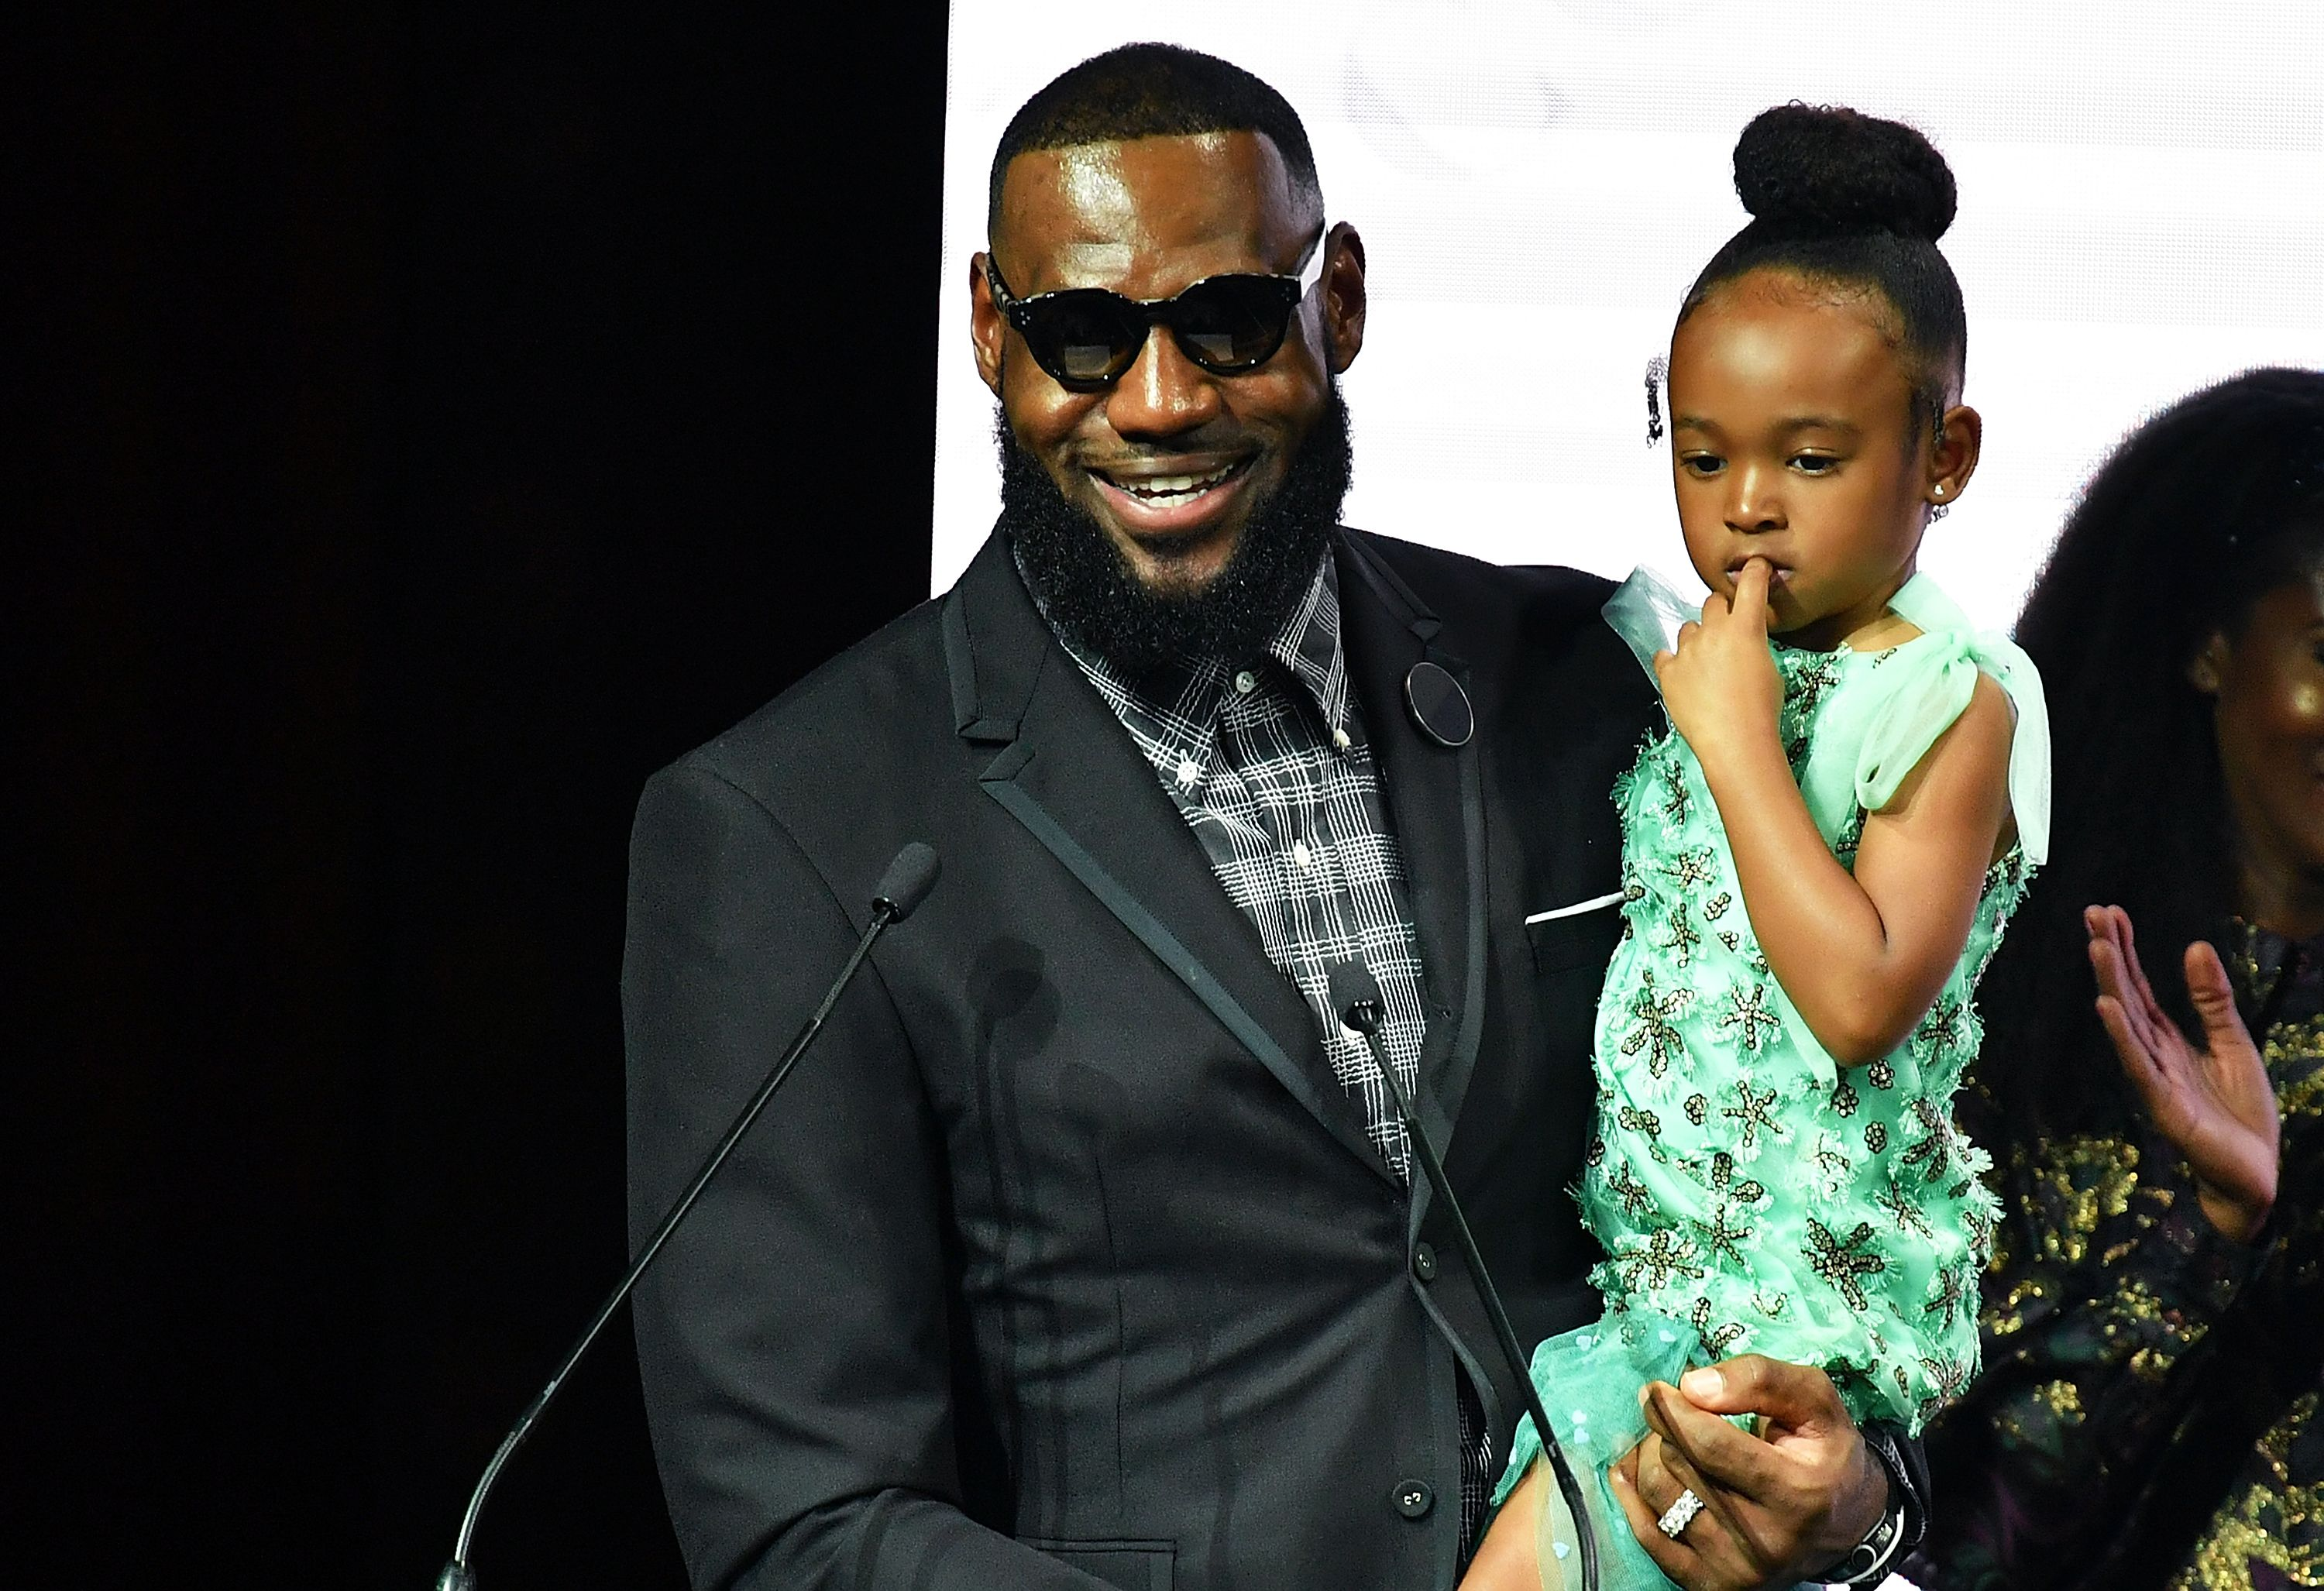 LeBron James, recepient of Icon 360 Award and daughter Zhuri James attend Harlem's Fashion Row during New York Fahion Week at Capitale on September 4, 2018. | Photo: Getty Images